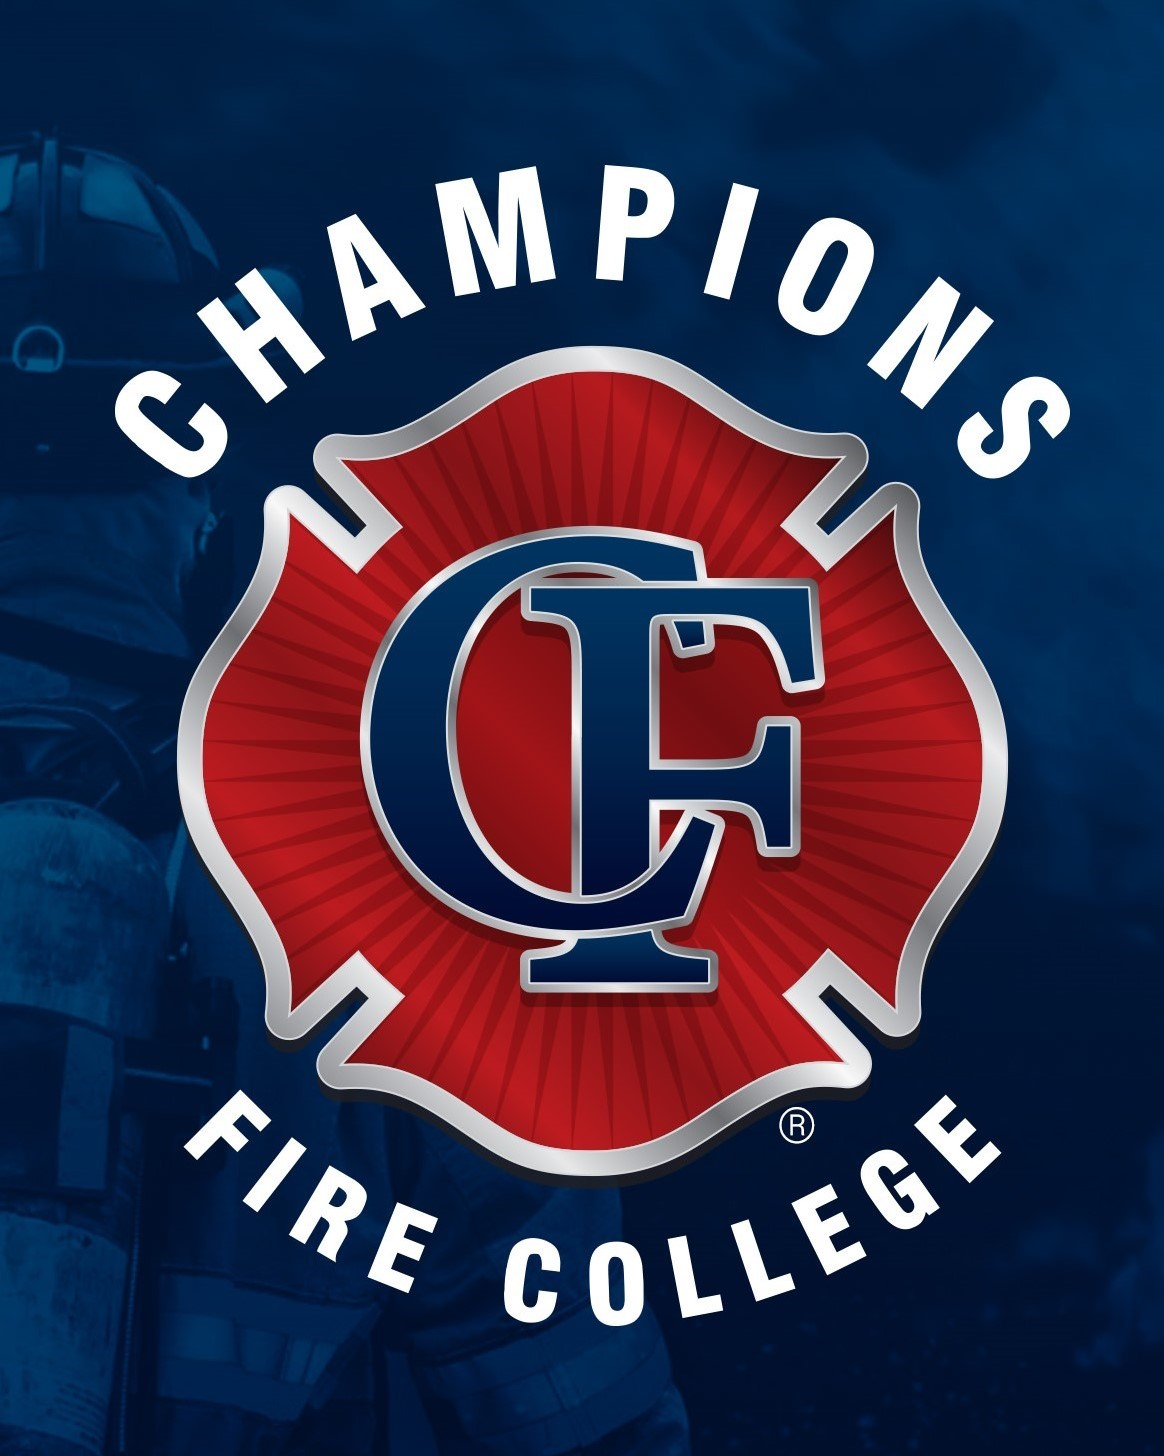 Champions Fire College